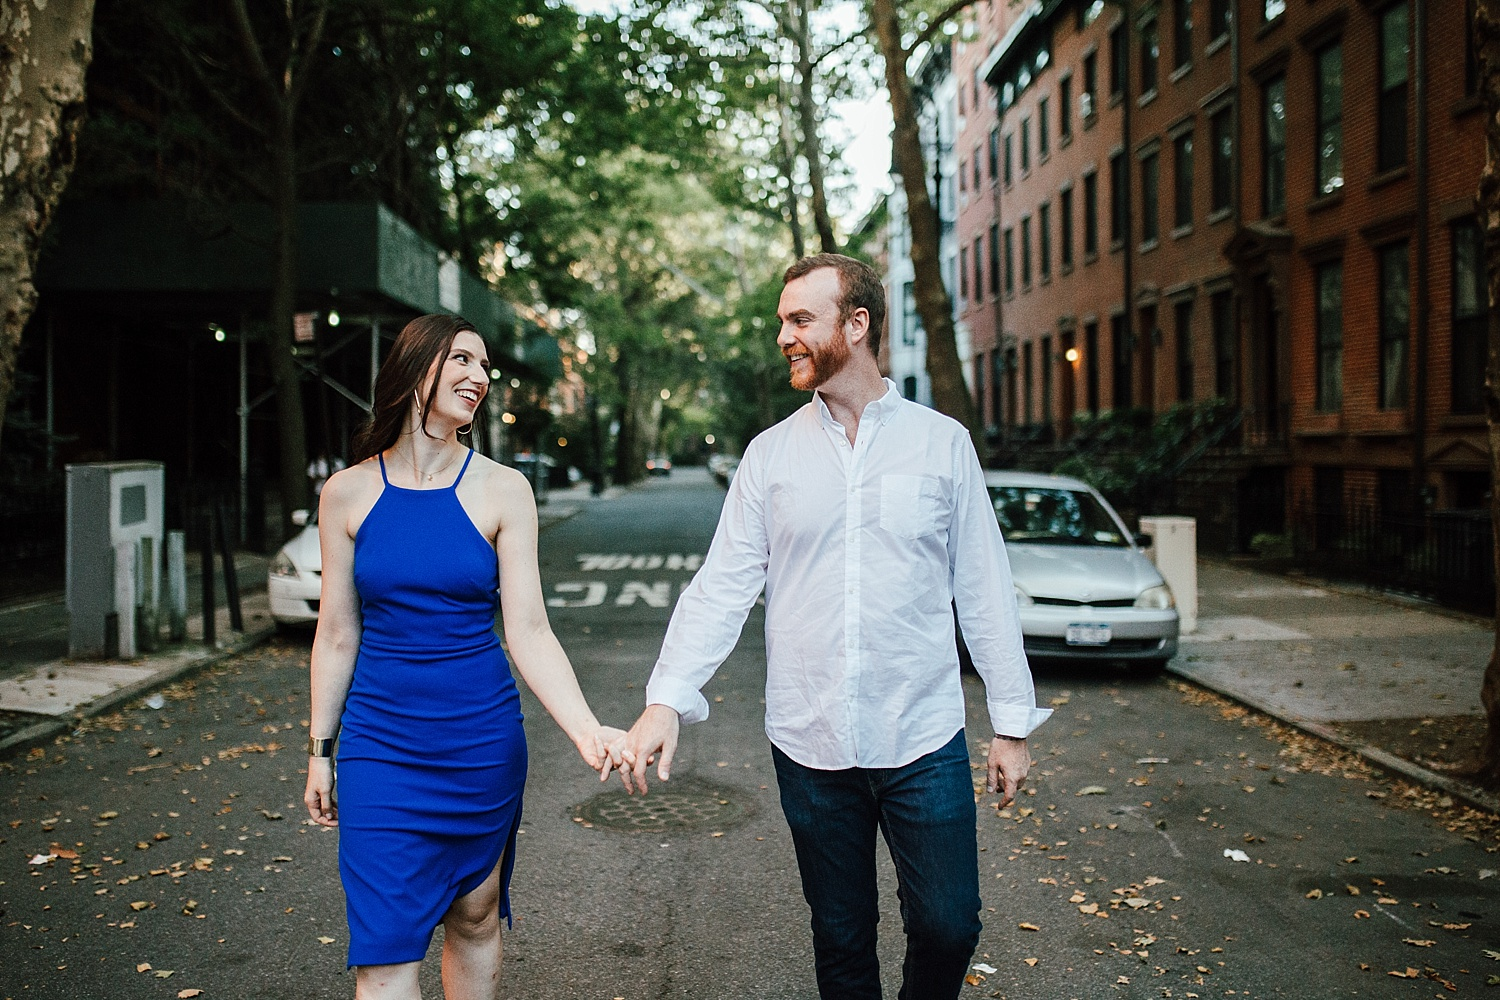 Brooklyn Heights Engagement Photos, Brooklyn Heights Engagement, Brooklyn Heights Engagement Session, Brooklyn Engagement Photos, Brooklyn Engagement Photos Ideas, New York Wedding Photographers, New York Couples Session, New York Photo Ideas, Ashley Izquierdo, Tampa Wedding Photographers, Tampa Wedding Photographer